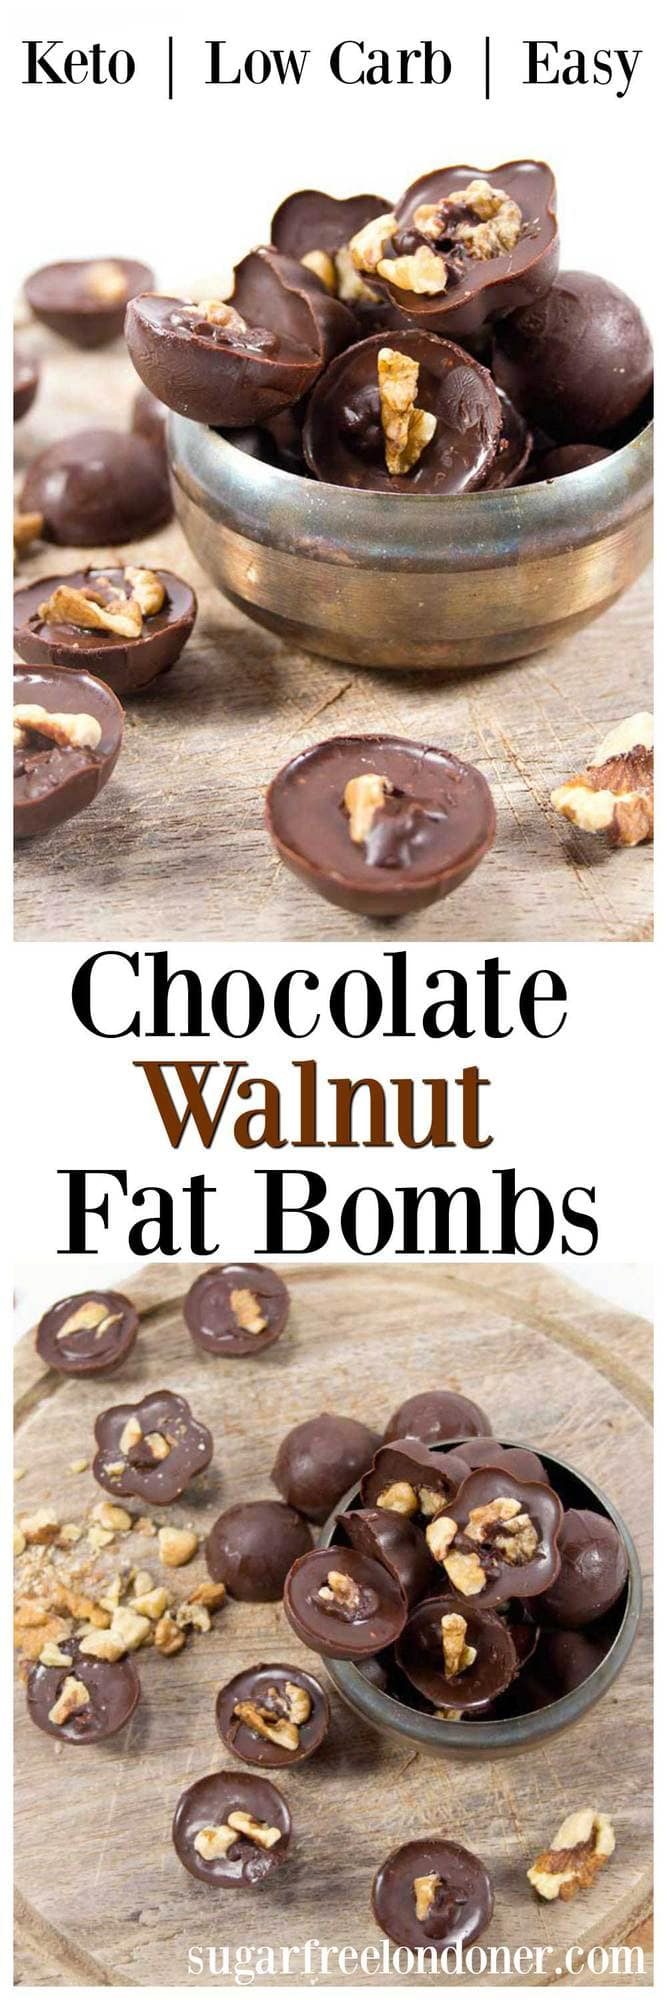 Chocolate walnut fat bombs are a delicious way to satisfy your sweet craving. This keto snack is perfect for a quick-fix energy boost. #fatbomb #keto #lowcarb #sugarfree #snack #walnut #glutenfree #diabetic